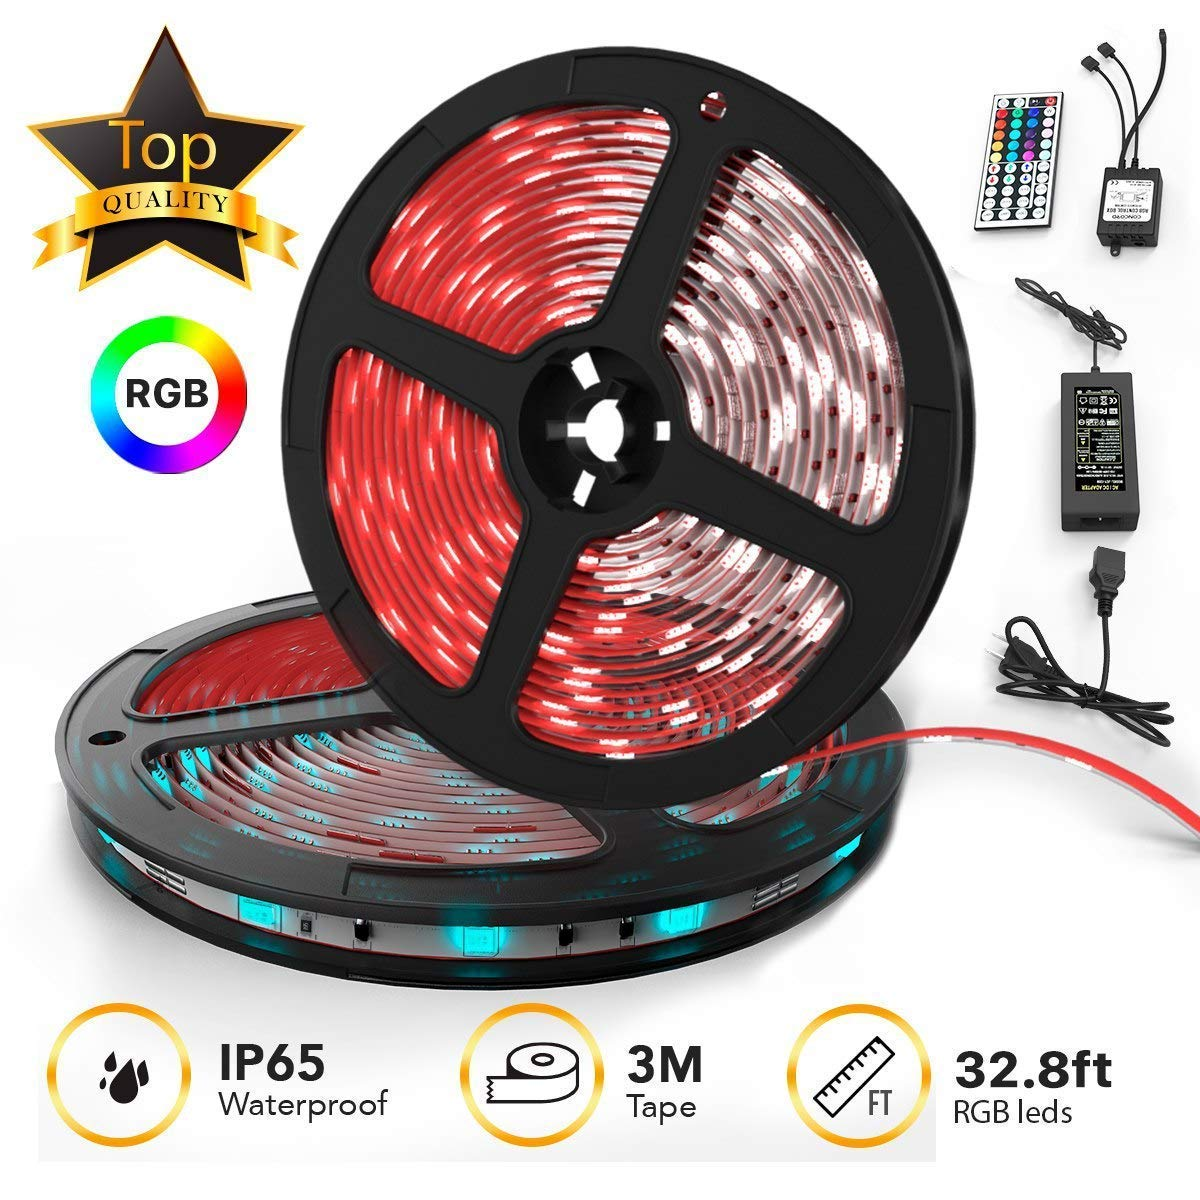 Upgraded 2019 LED Strip Lights Kit 32.8ft w/Extra Adhesive 3M Tape - 300